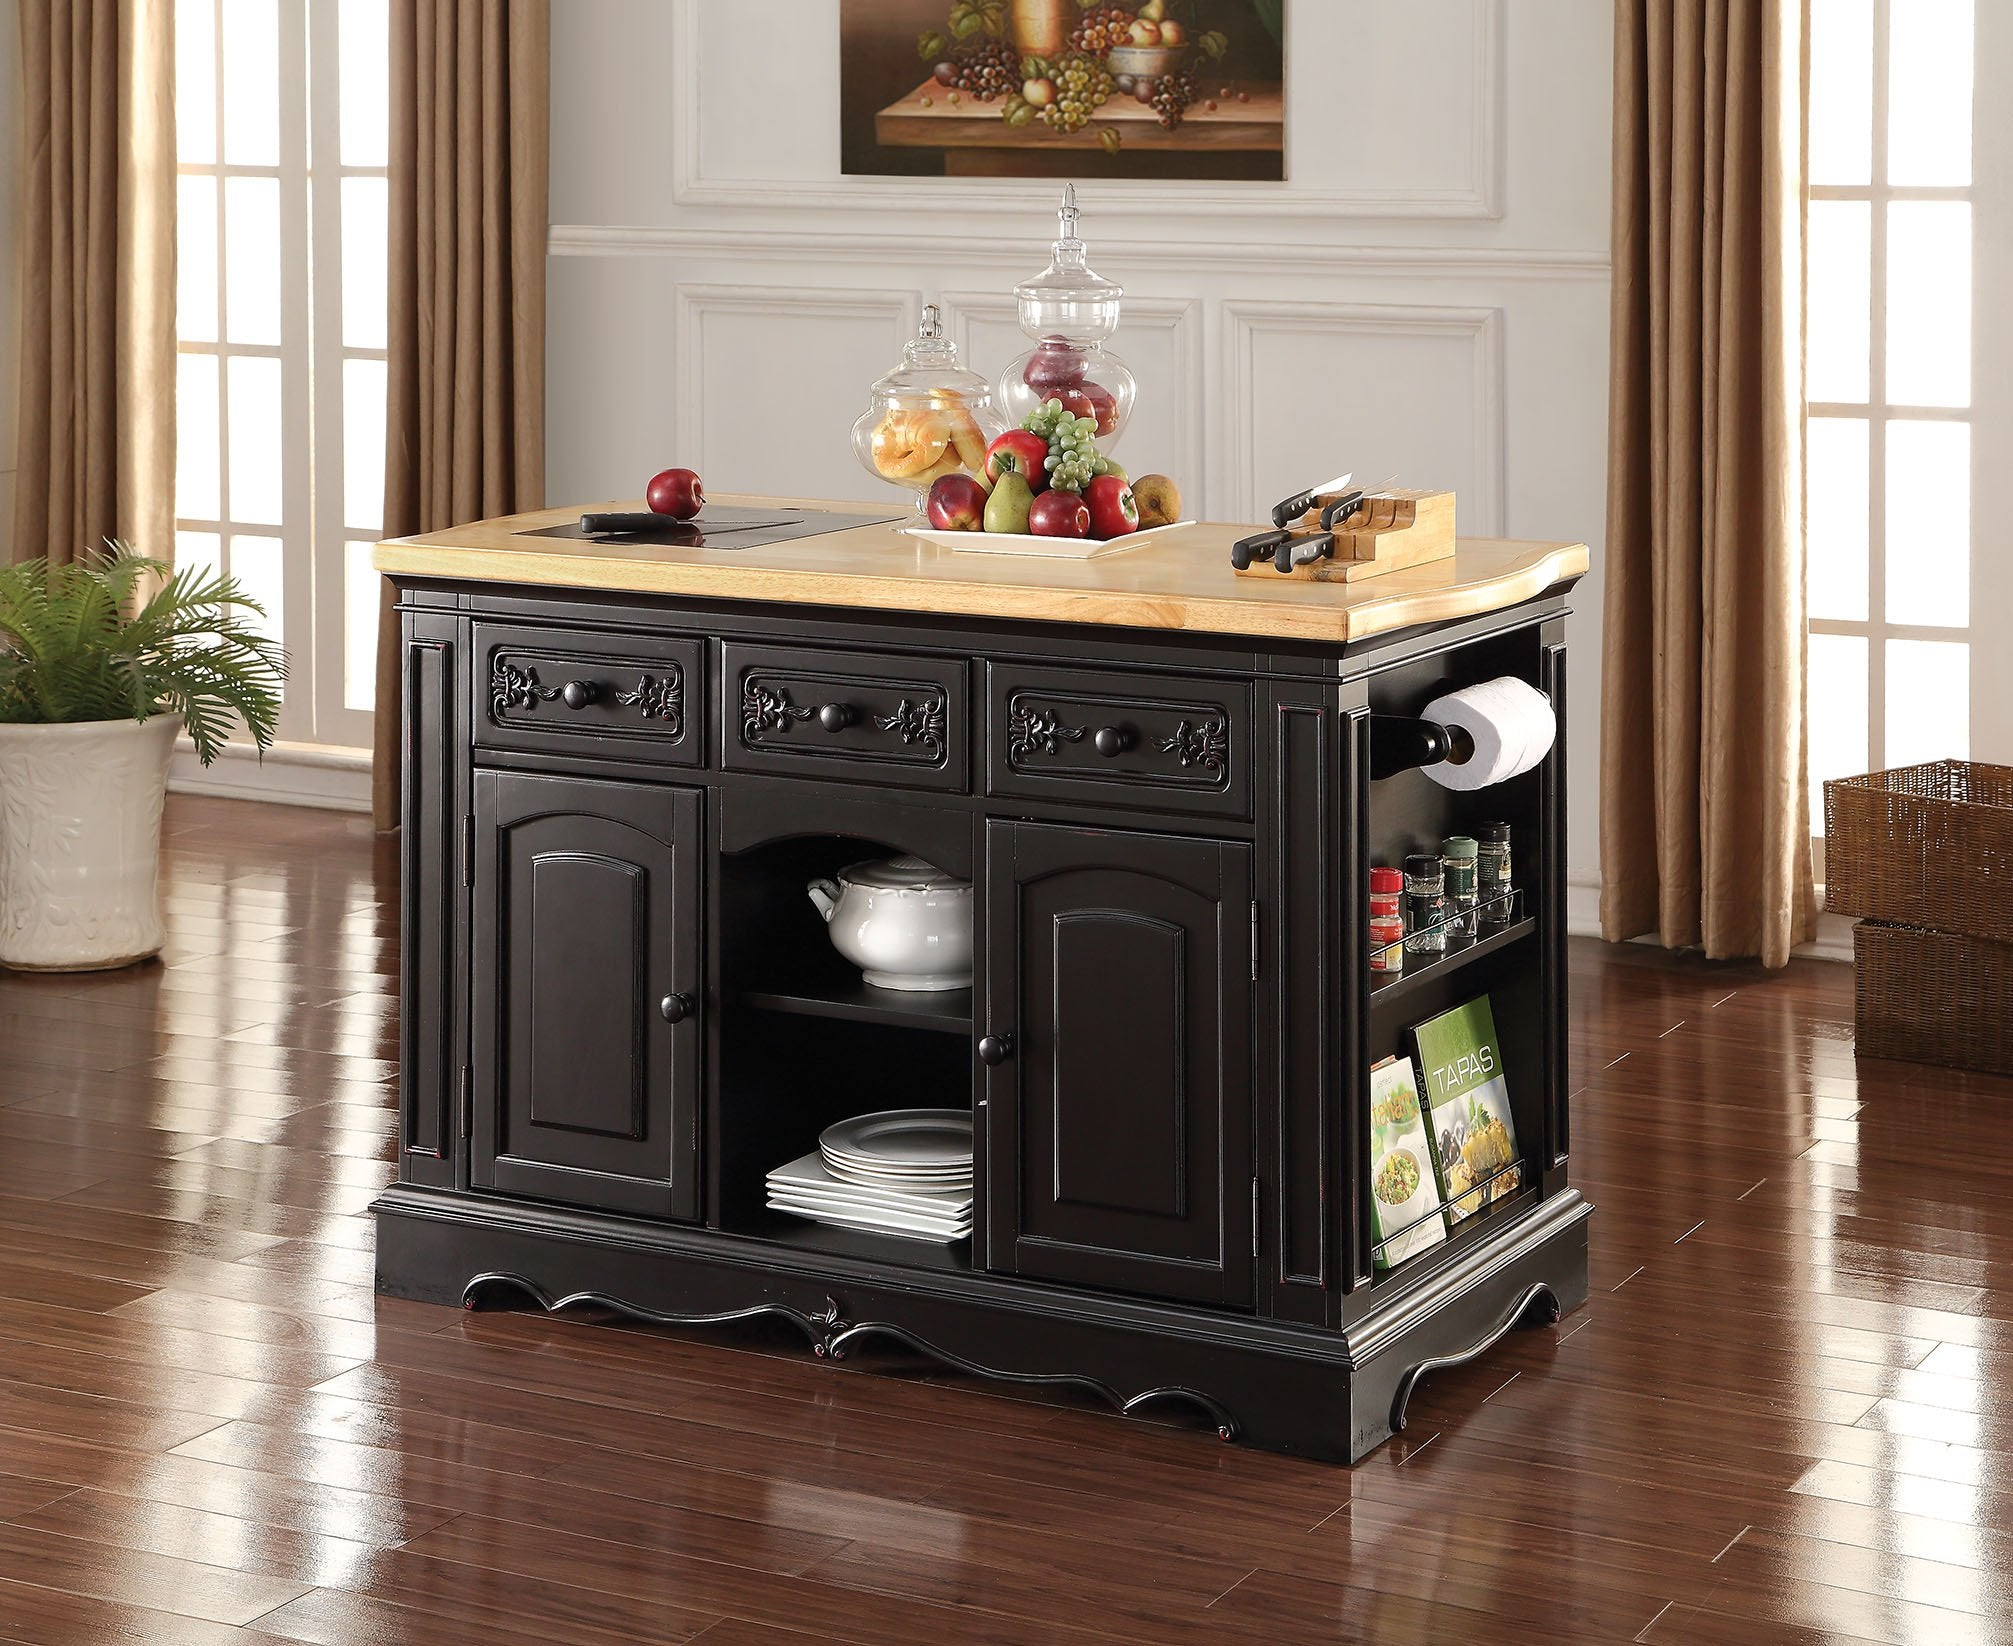 Acme Ariuk Granite Black wood Stroage Kitchen Island Cabinet